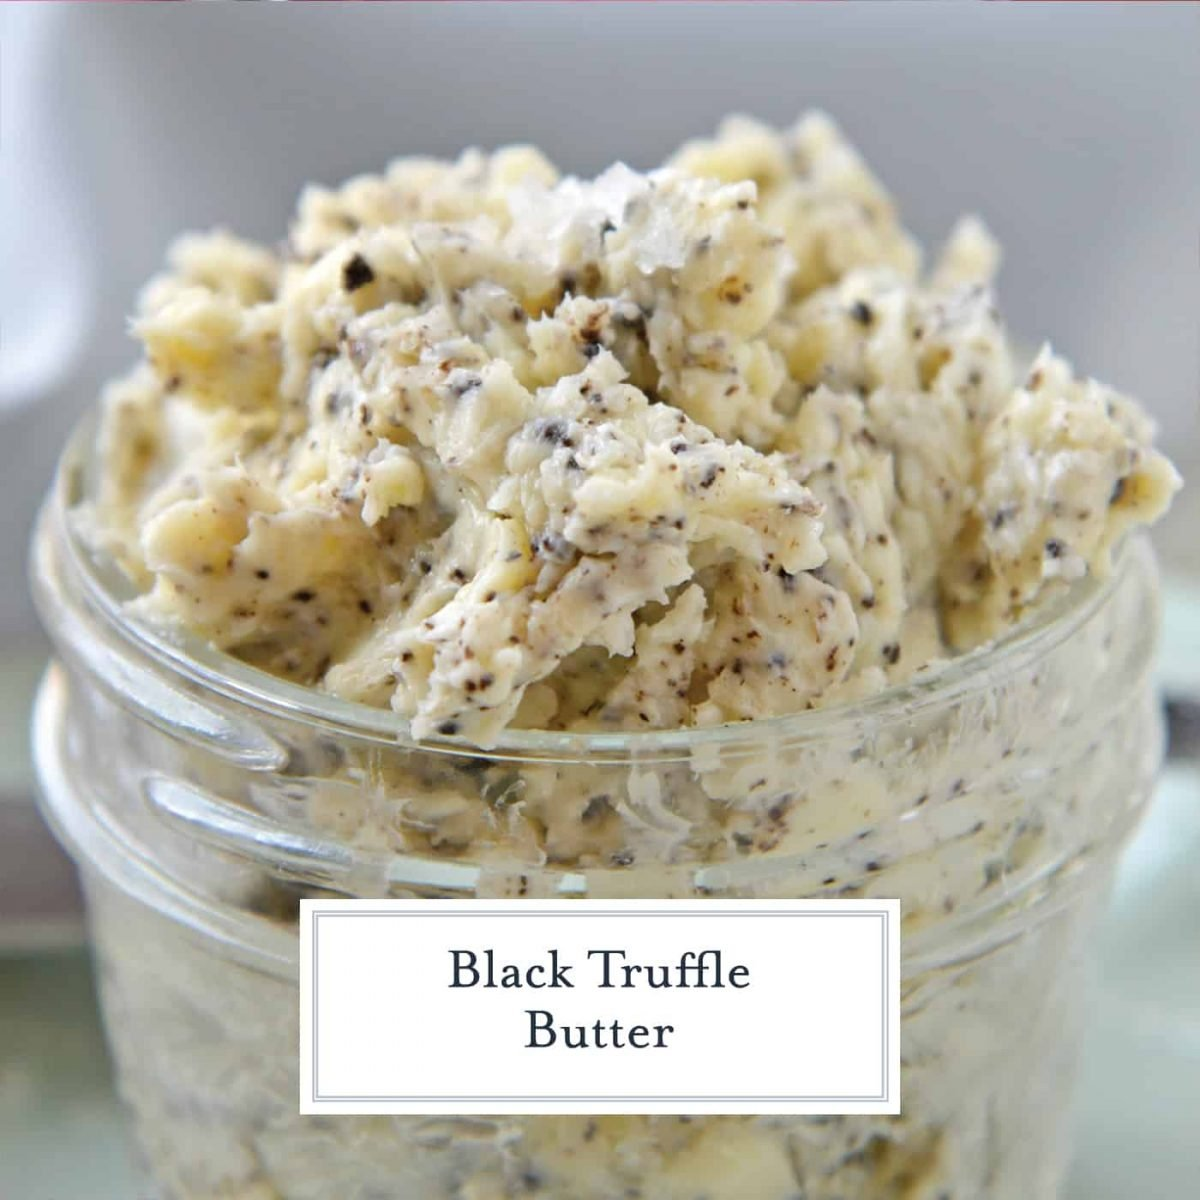 Truffle butter in a glass bowl